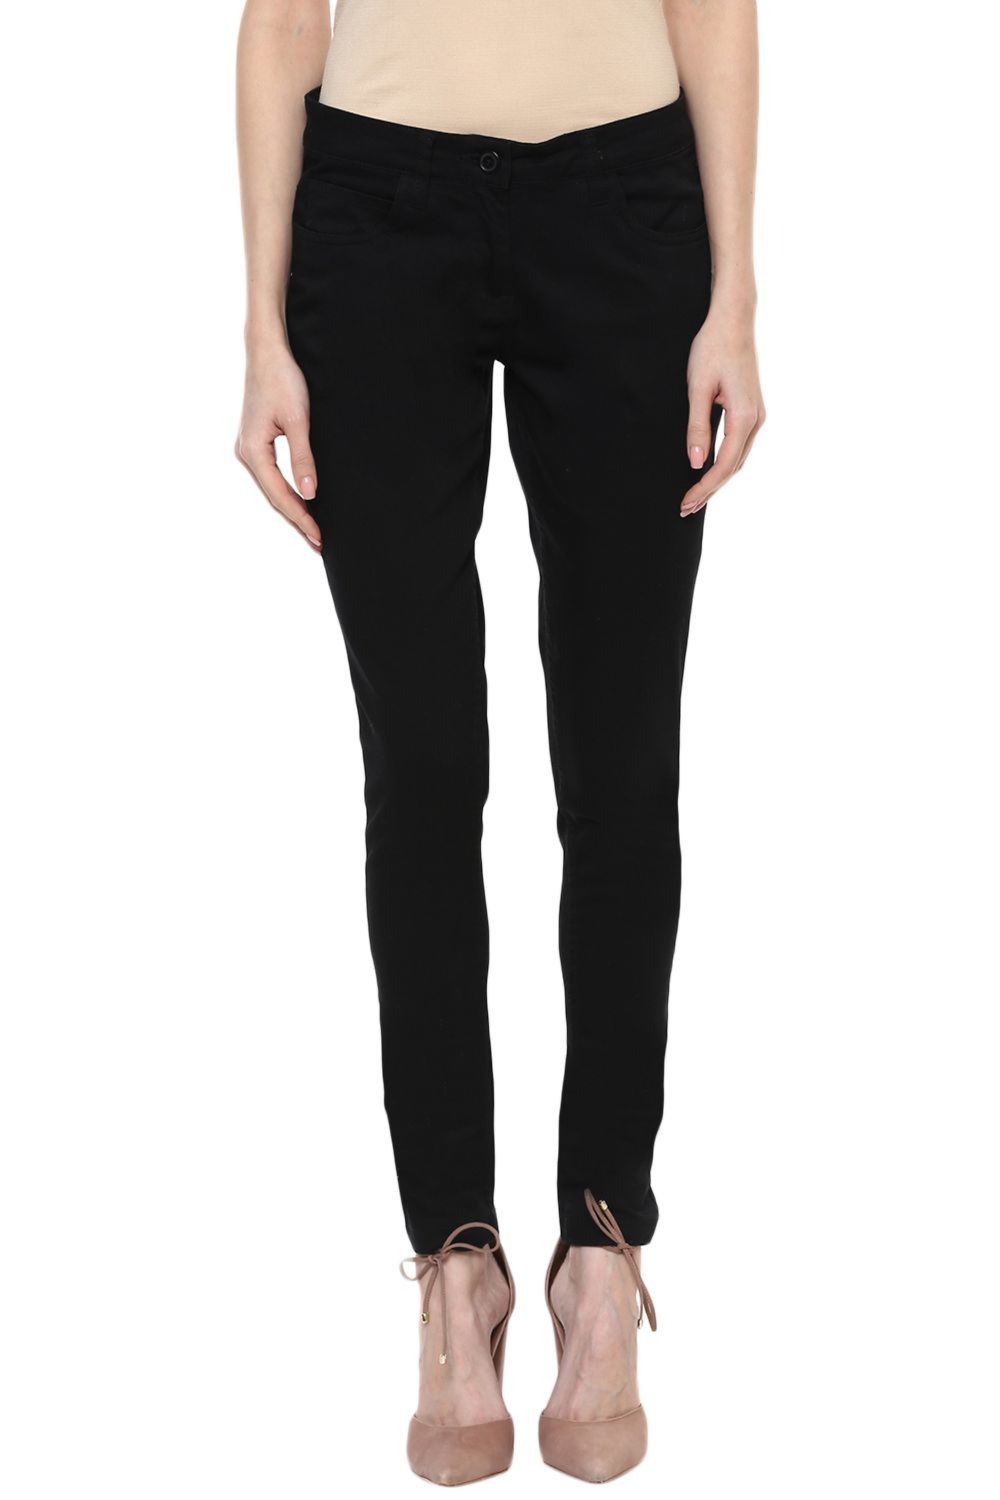 4427fc8c4fad9 Pantaloons Women Trousers - Buy Pantaloons Leggings for Women ...